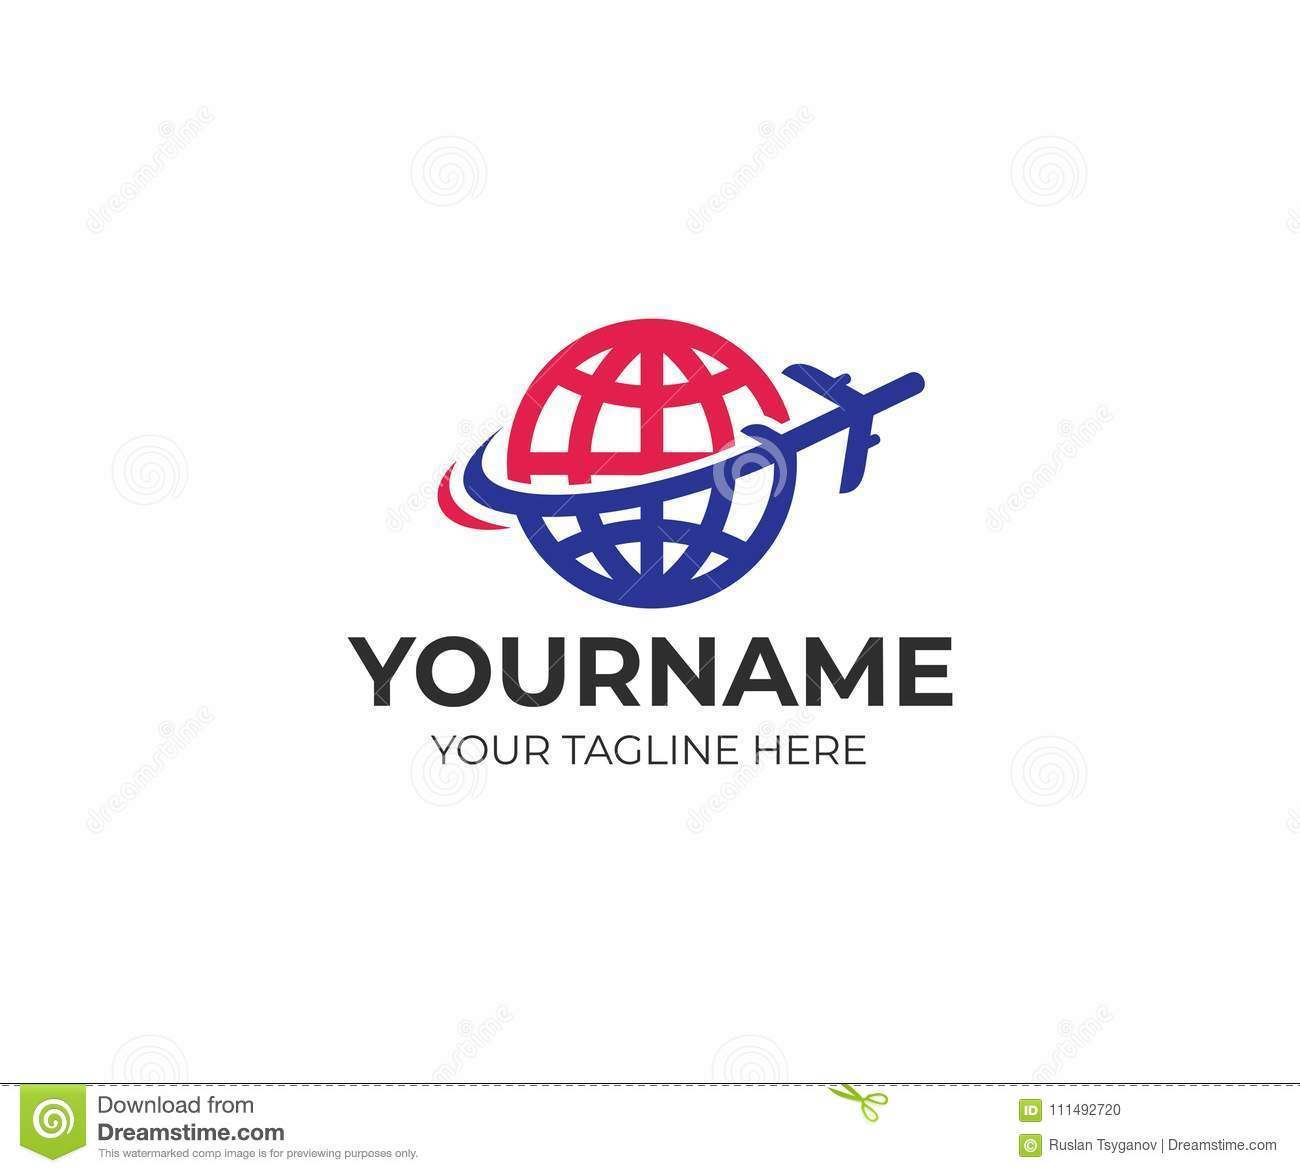 Plane flies around the planet earth logo template. Travel and flying plane vector design